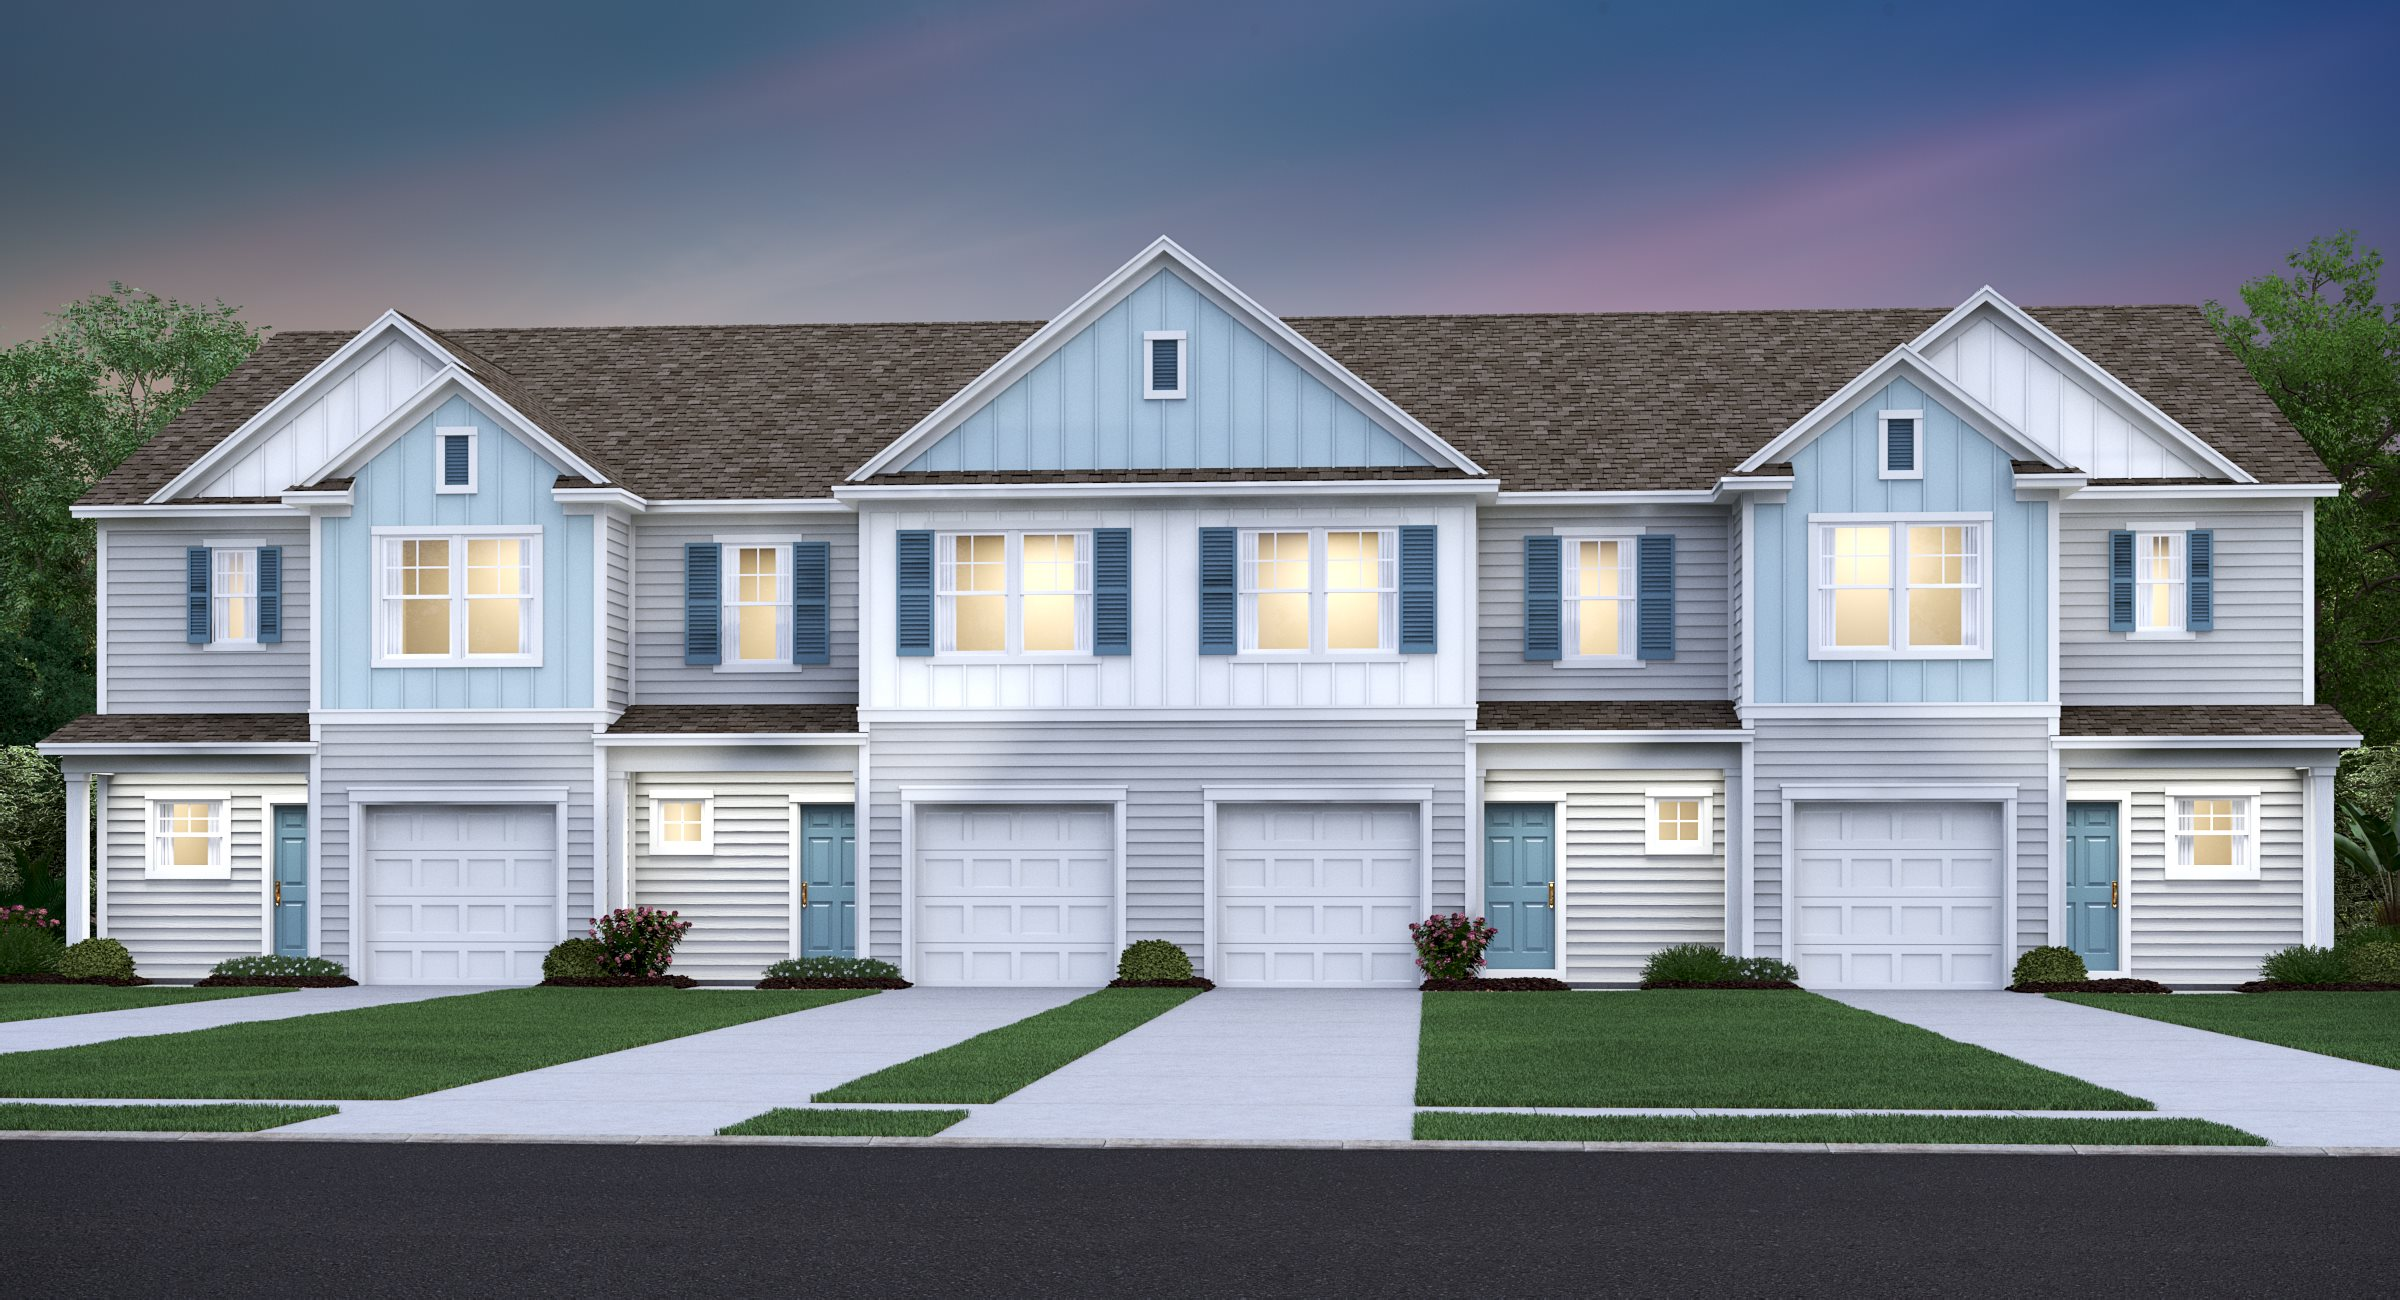 Longleaf Longleaf Townhome Collection Windley A